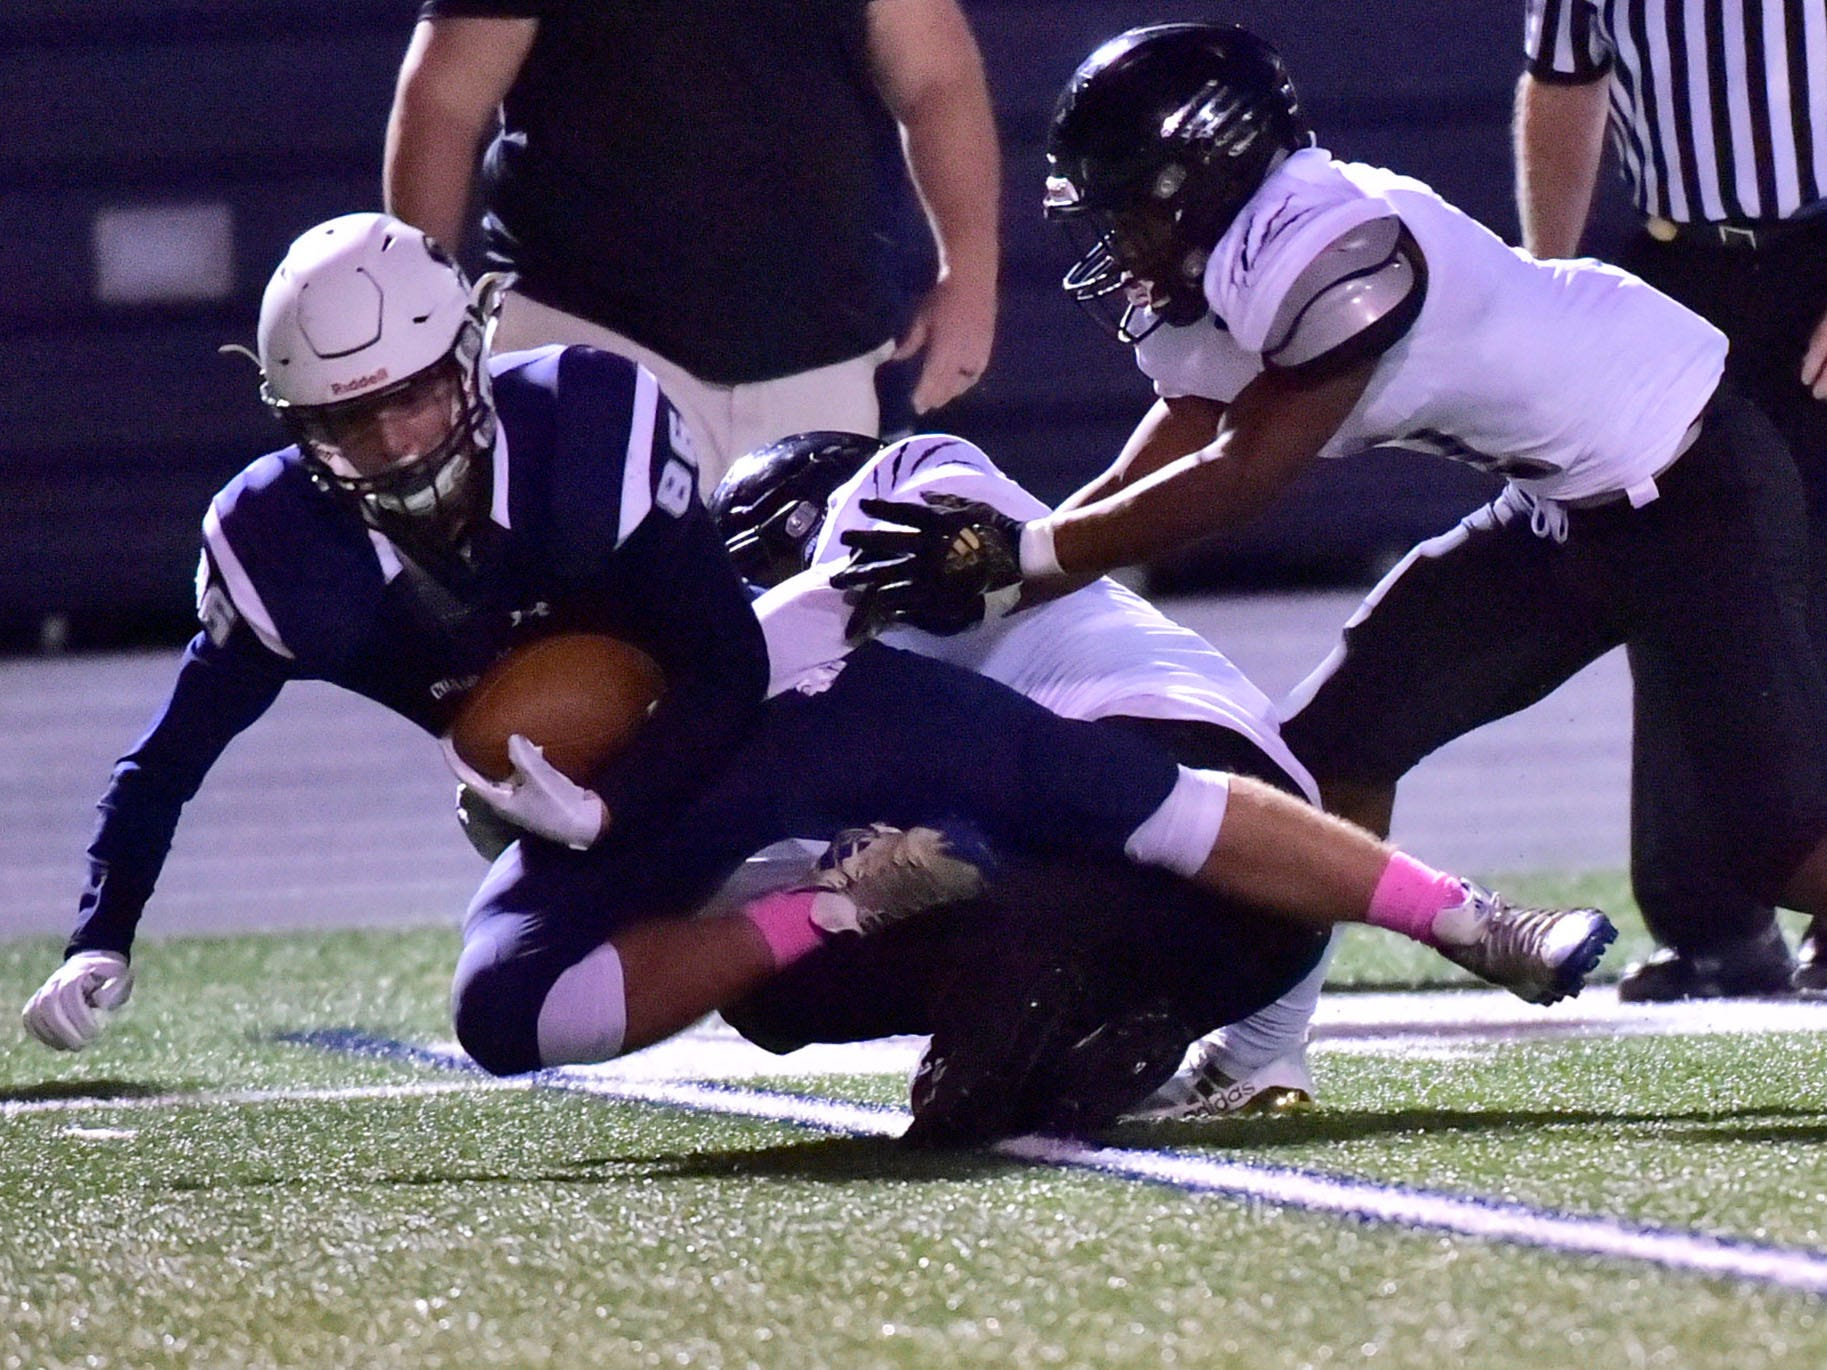 Alex Lapinski (86) catches a pass and is tackled by Harrisburg. Chambersburg dropped a 28-13 game against Harrisburg in PIAA football on Friday, Oct. 12, 2018.